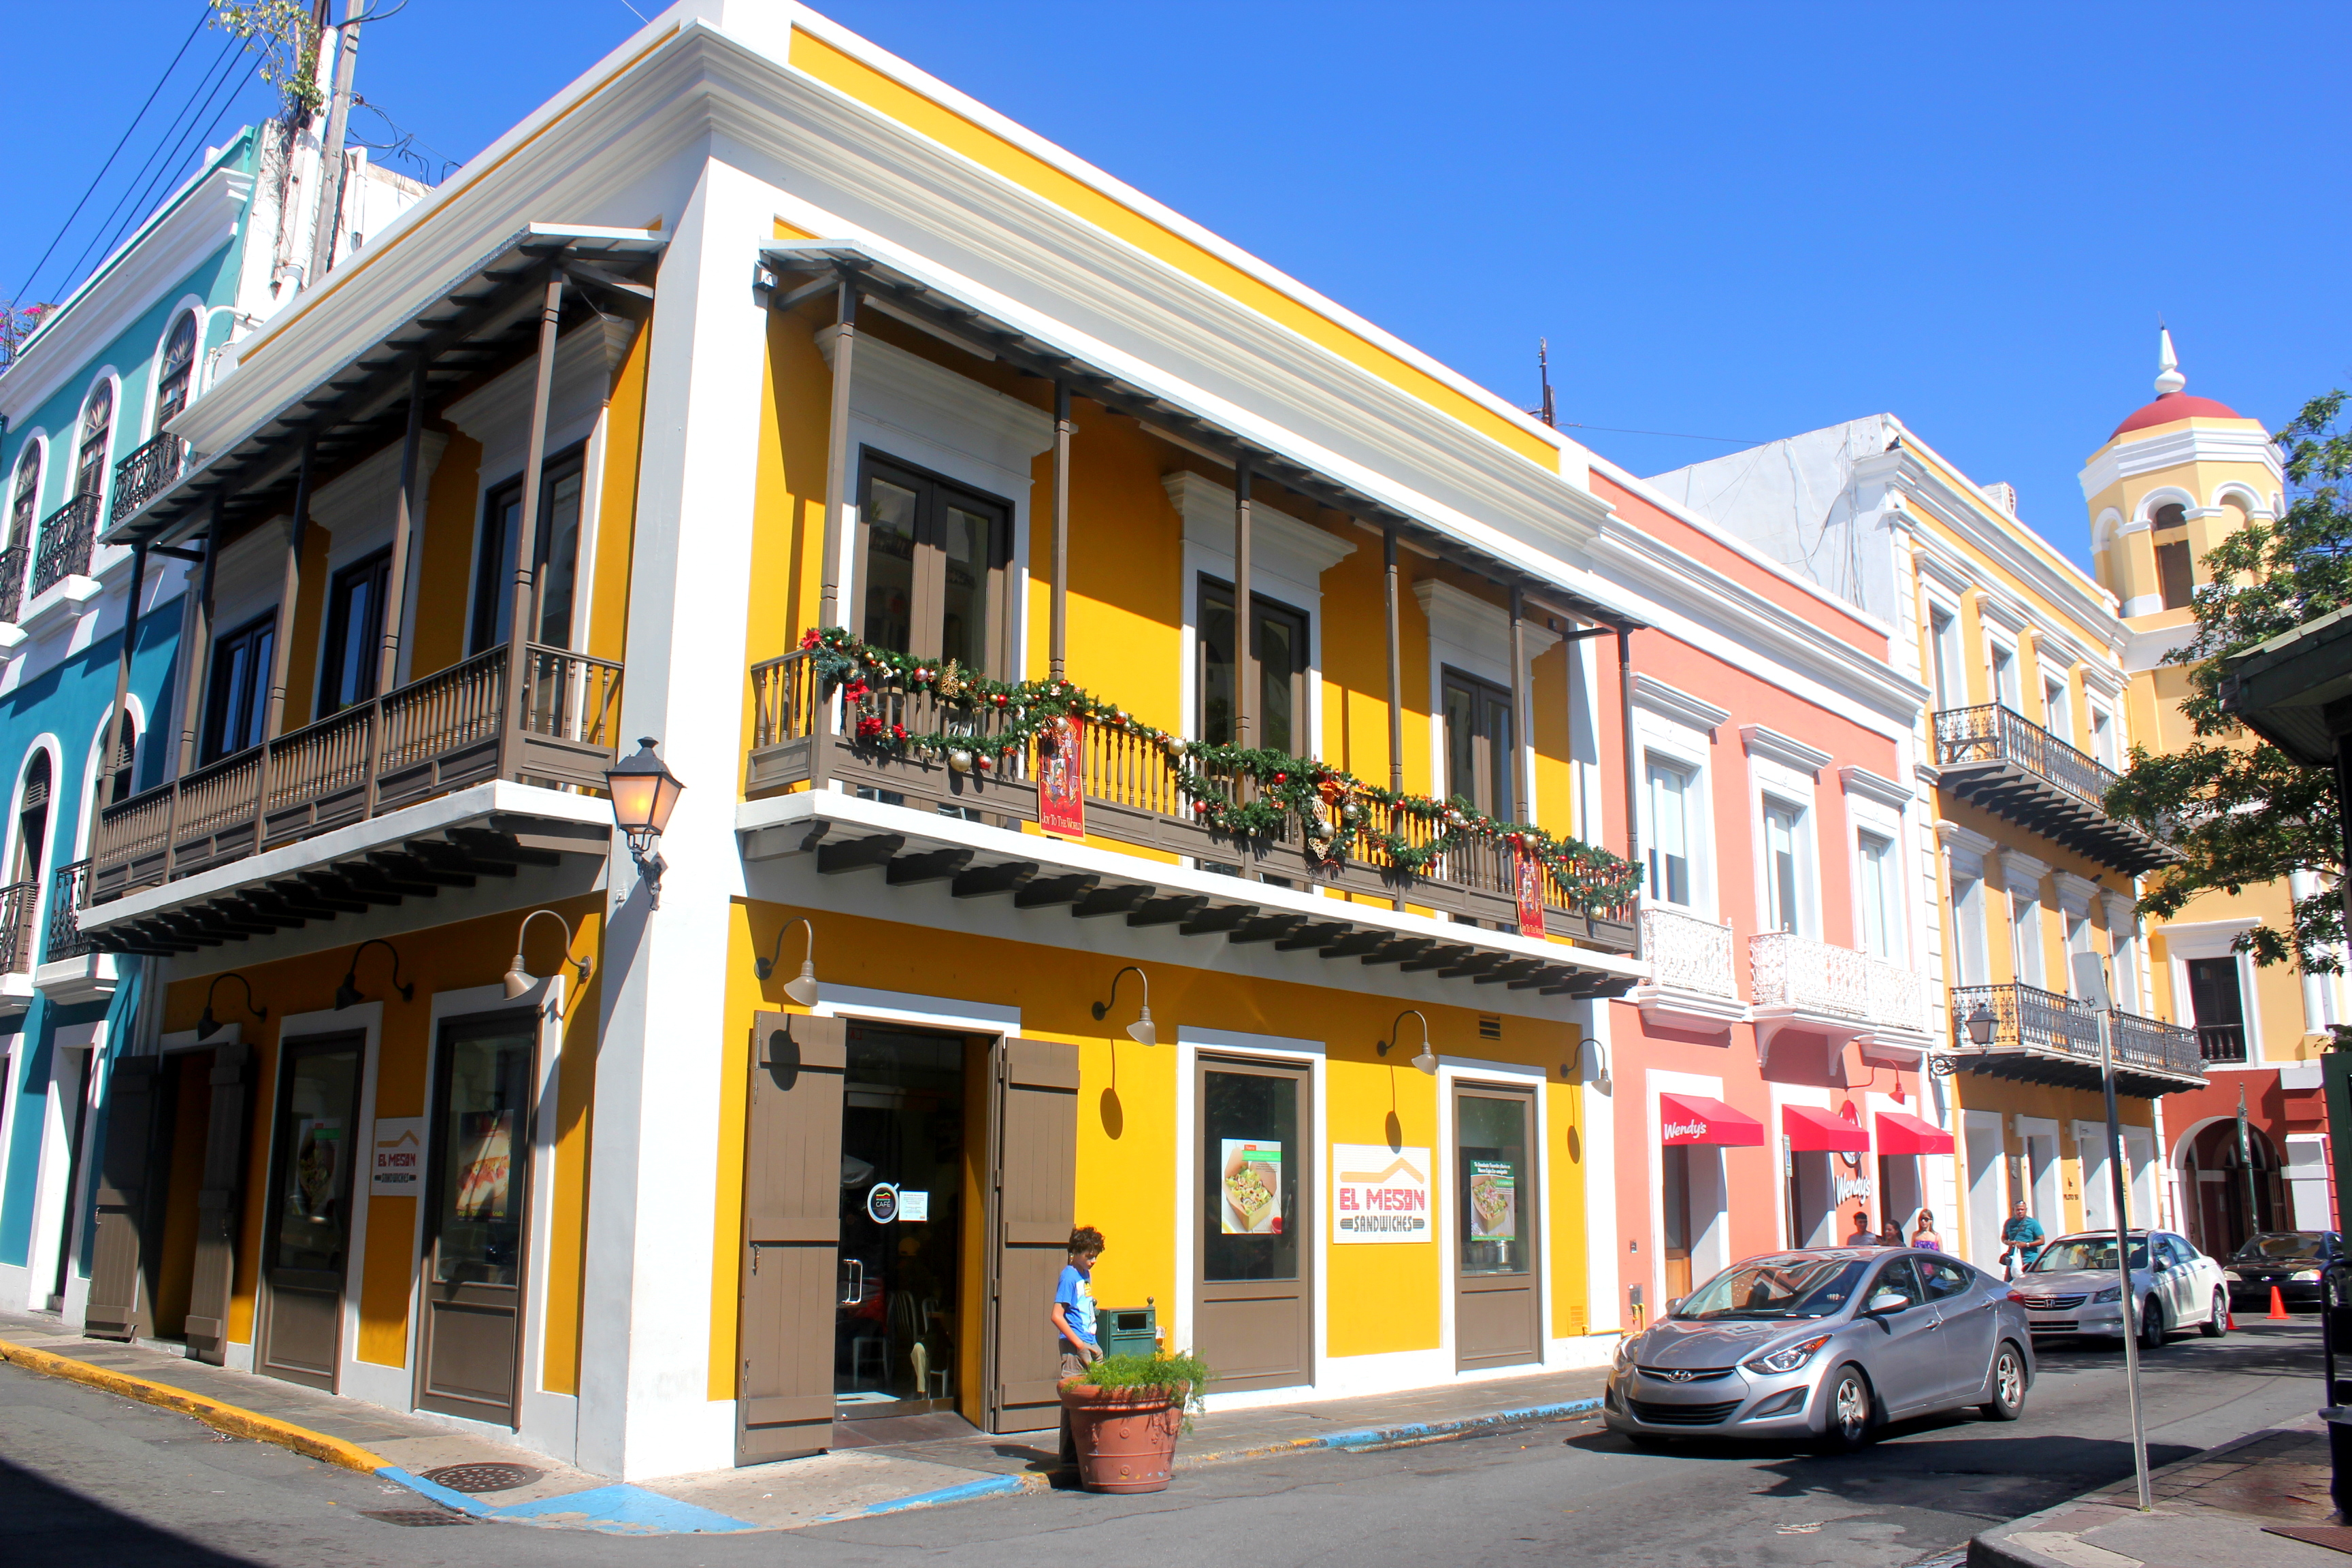 The colourful streets of old san juan puerto rico for Puerto rico vacation ideas